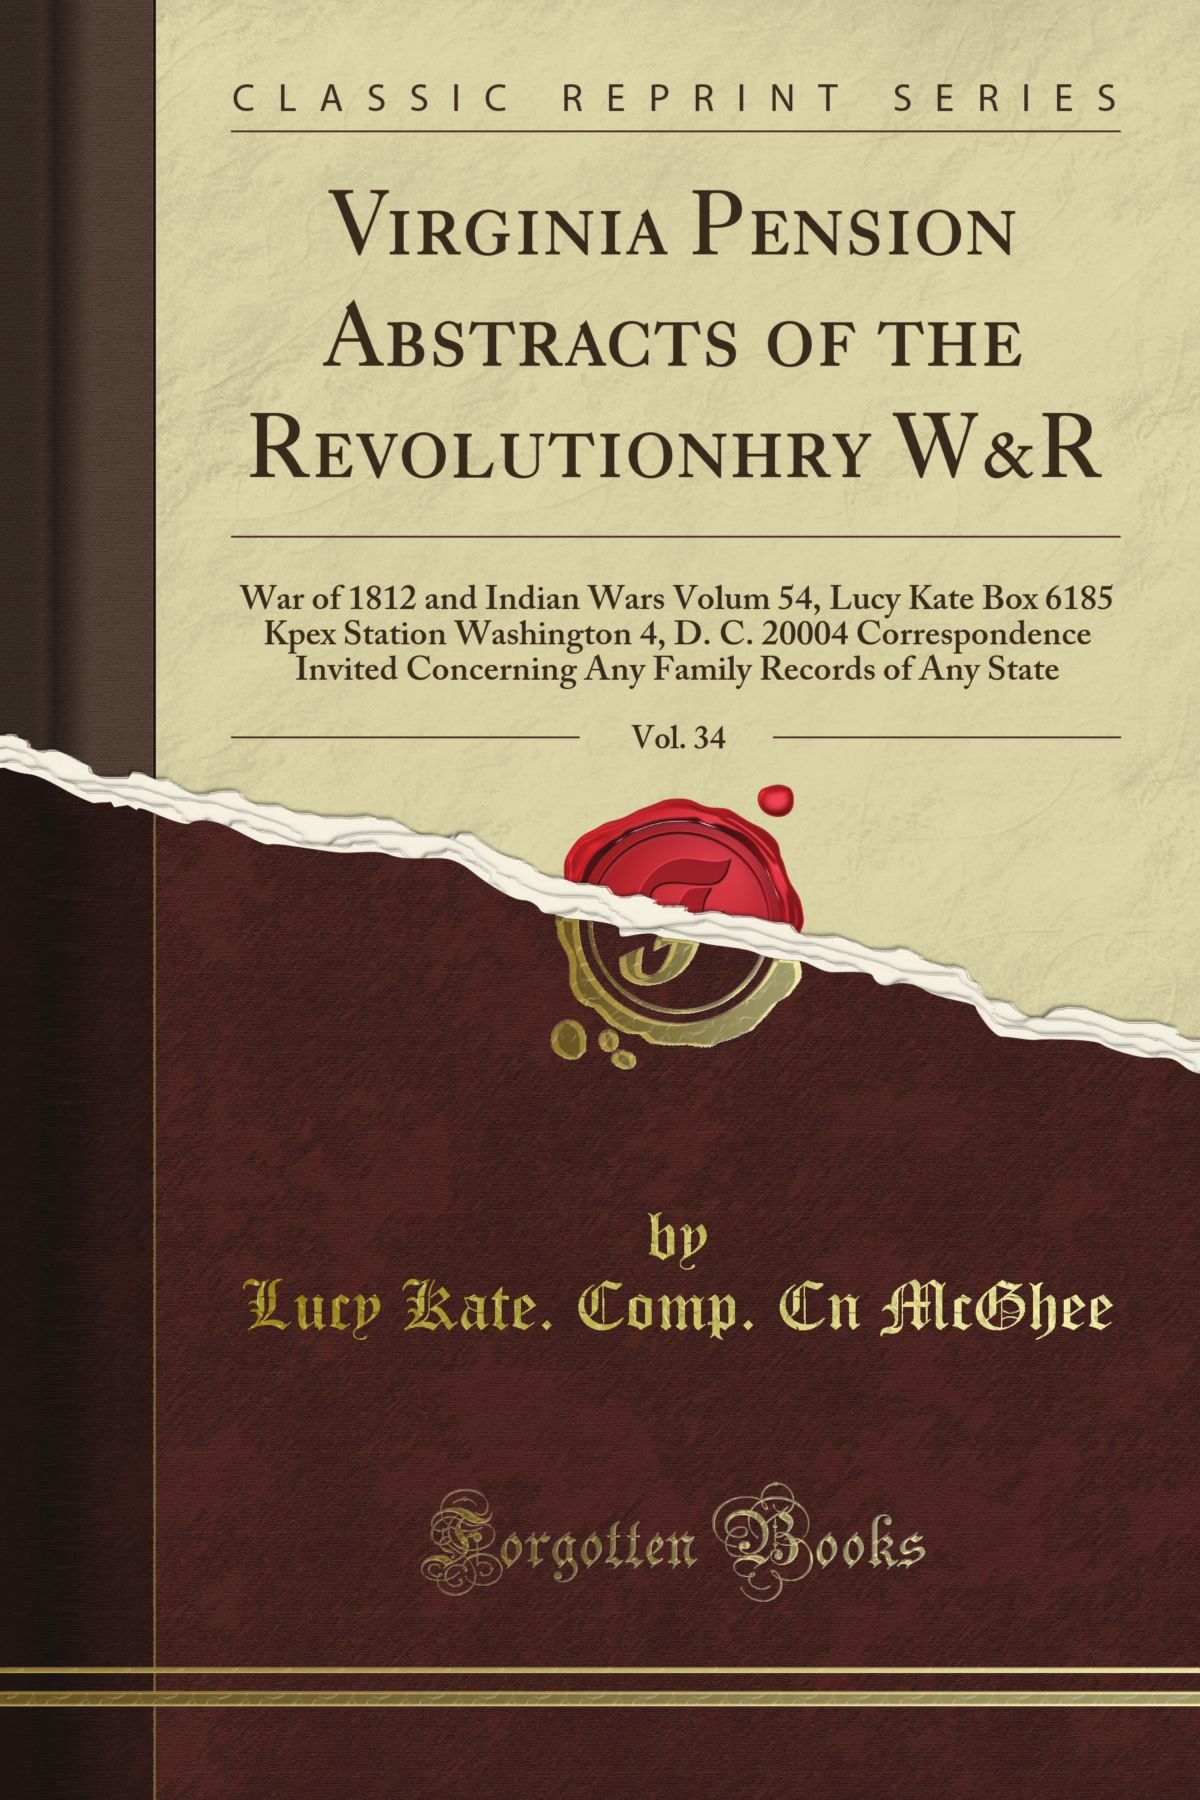 Virginia Pension Abstracts of the Revolutionhry W&R: War of 1812 and Indian Wars Volum 54, Lucy Kate Box 6185 Kpex Station Washington 4, D. C. 20004 ... of Any State, Vol. 34 (Classic Reprint) pdf epub